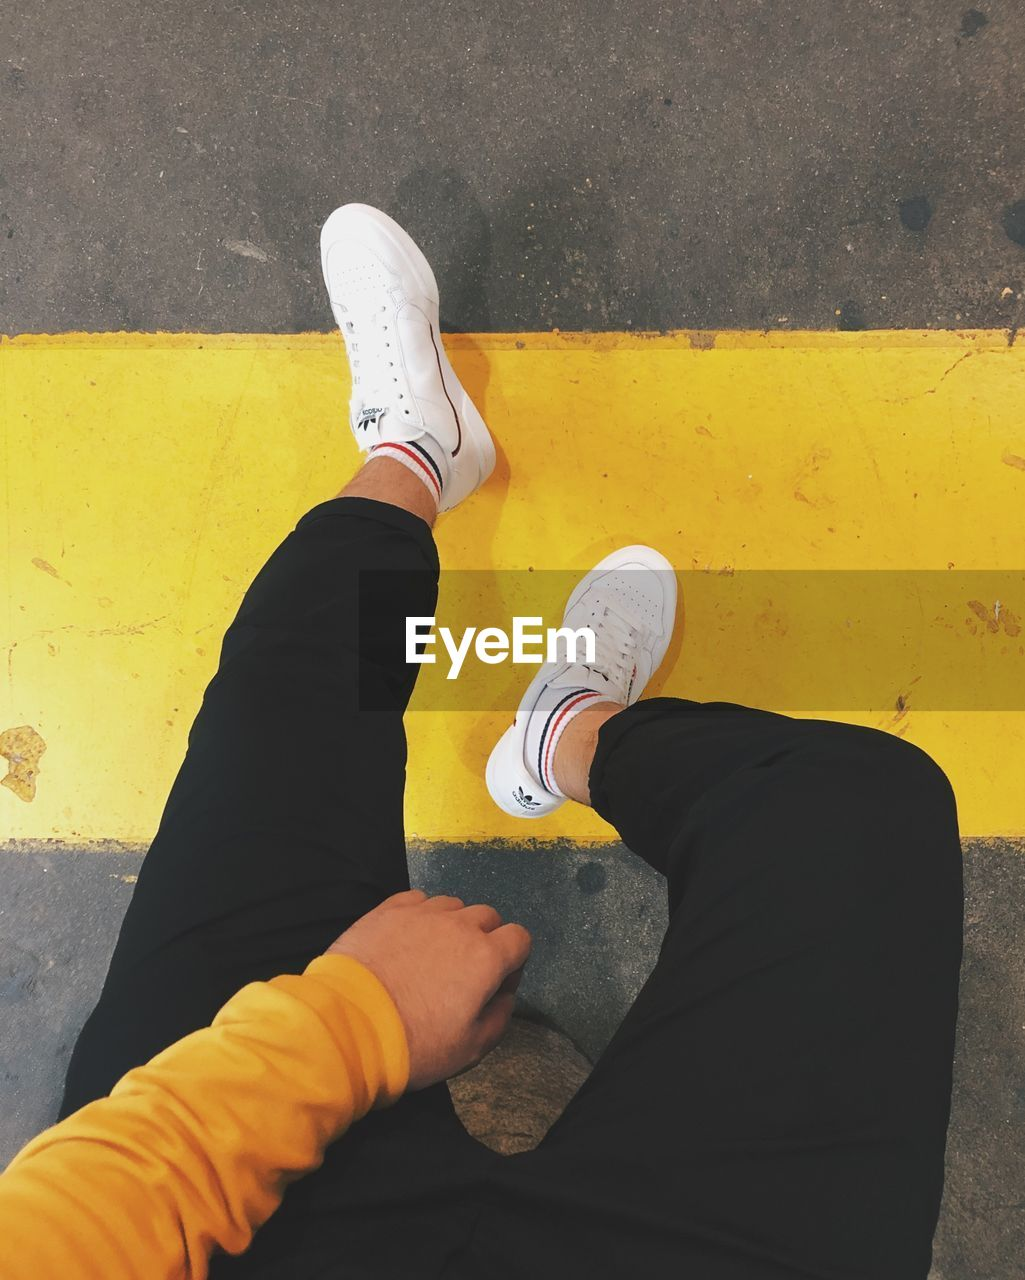 personal perspective, shoe, real people, low section, human leg, human body part, one person, yellow, body part, lifestyles, high angle view, day, men, standing, casual clothing, leisure activity, outdoors, sign, road, flooring, human foot, sock, jeans, human limb